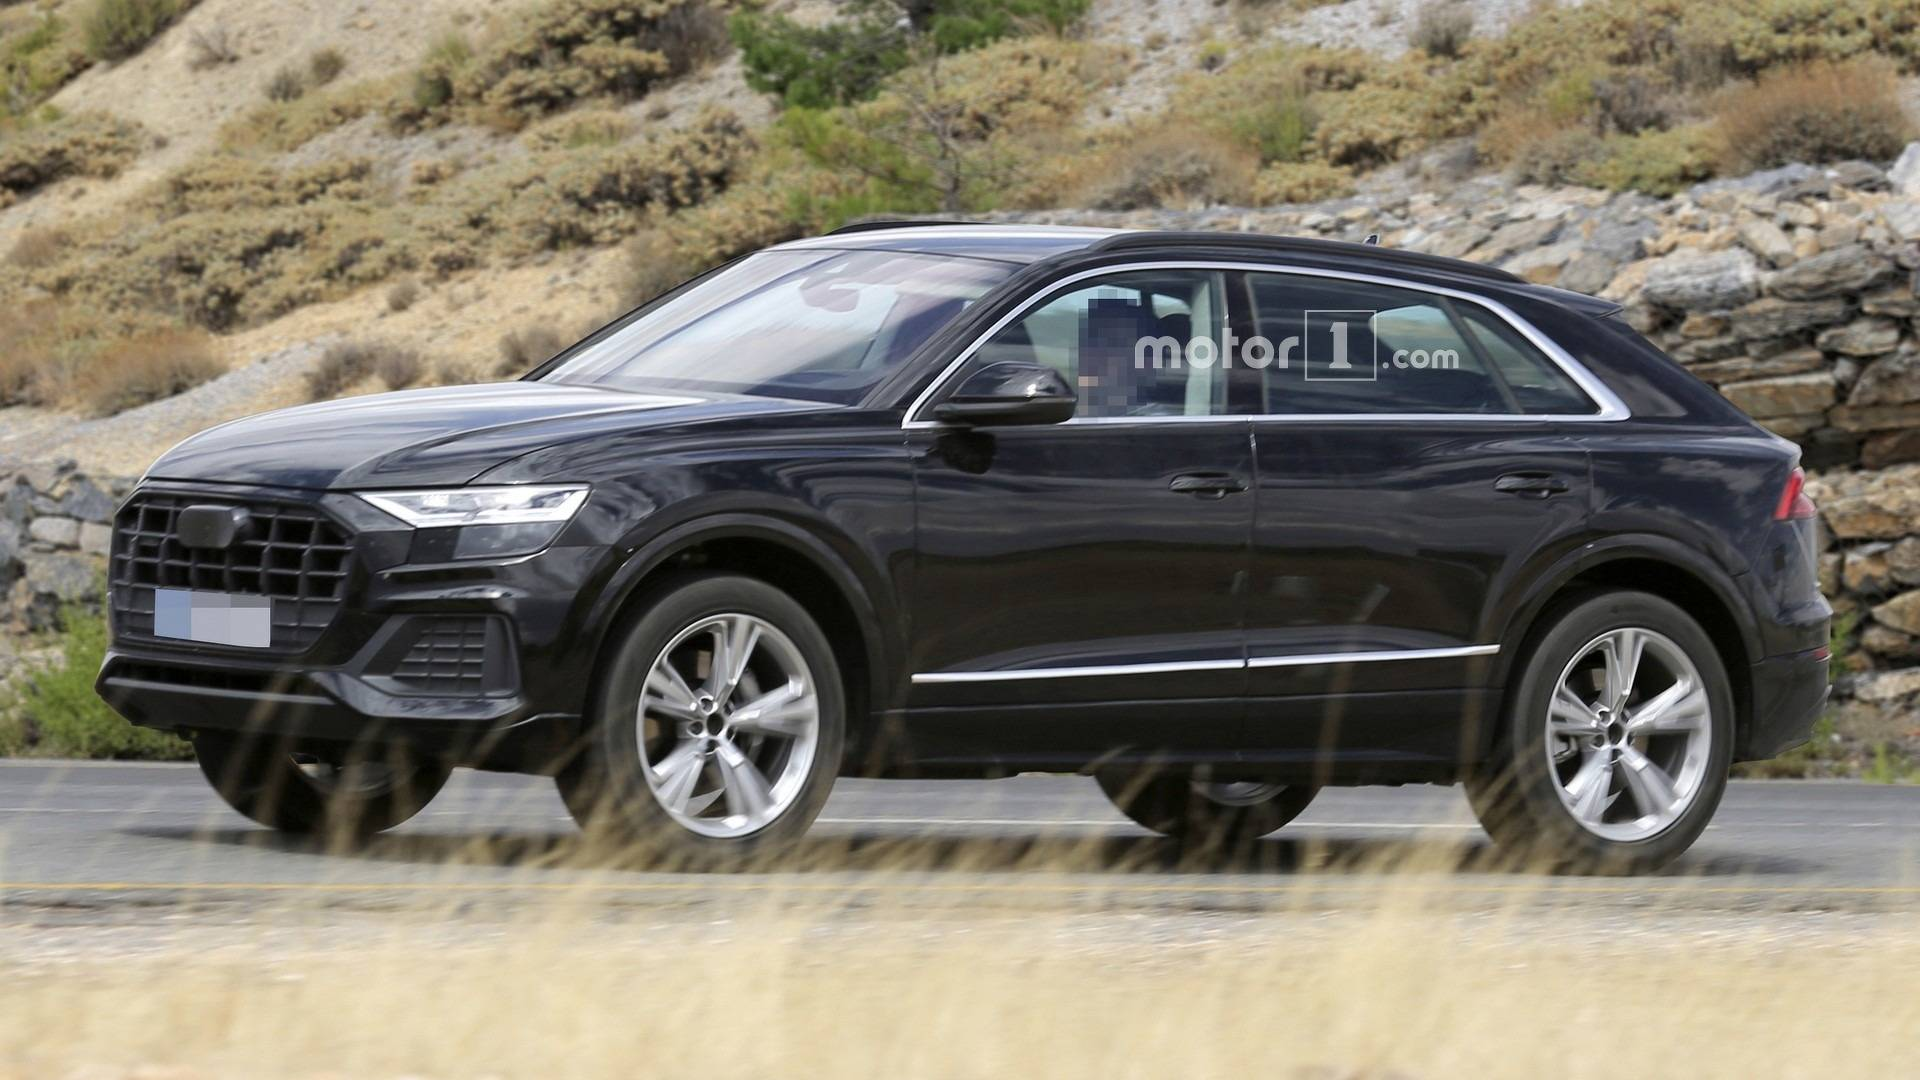 audi q8 concept revealed in detroit a full size suv with the emotional design. Black Bedroom Furniture Sets. Home Design Ideas